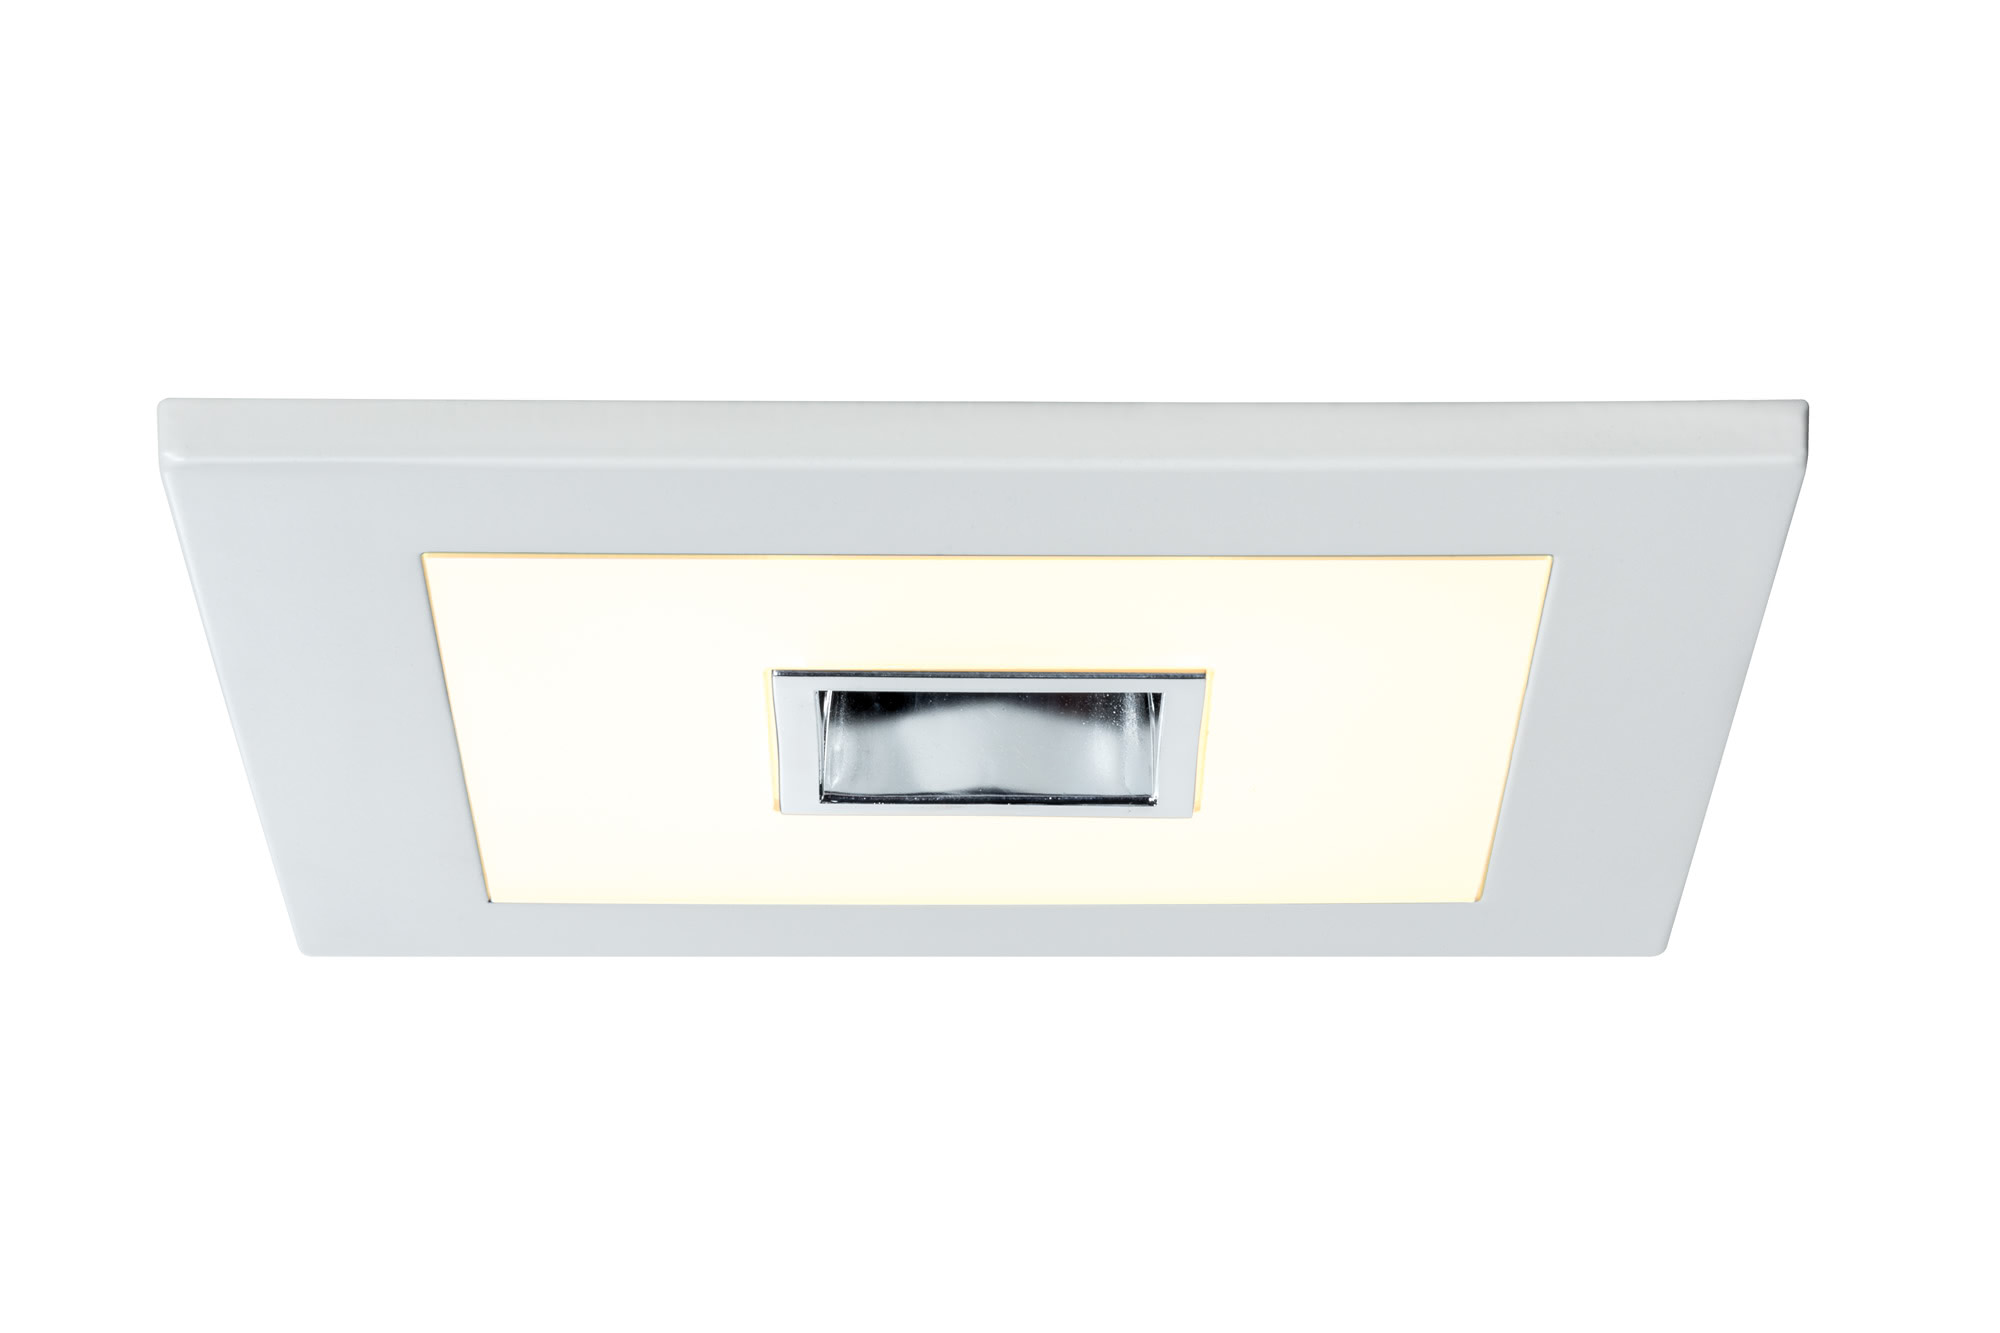 92711 EBL Anschlu?set Radium GU10 max.50W The Premium Quad LED panel provides generous light, built into a decorative panel. 927.11 Recessed panel Premium Line 16.8 W LED white Warm white, square, 1 pc. set Paulmann